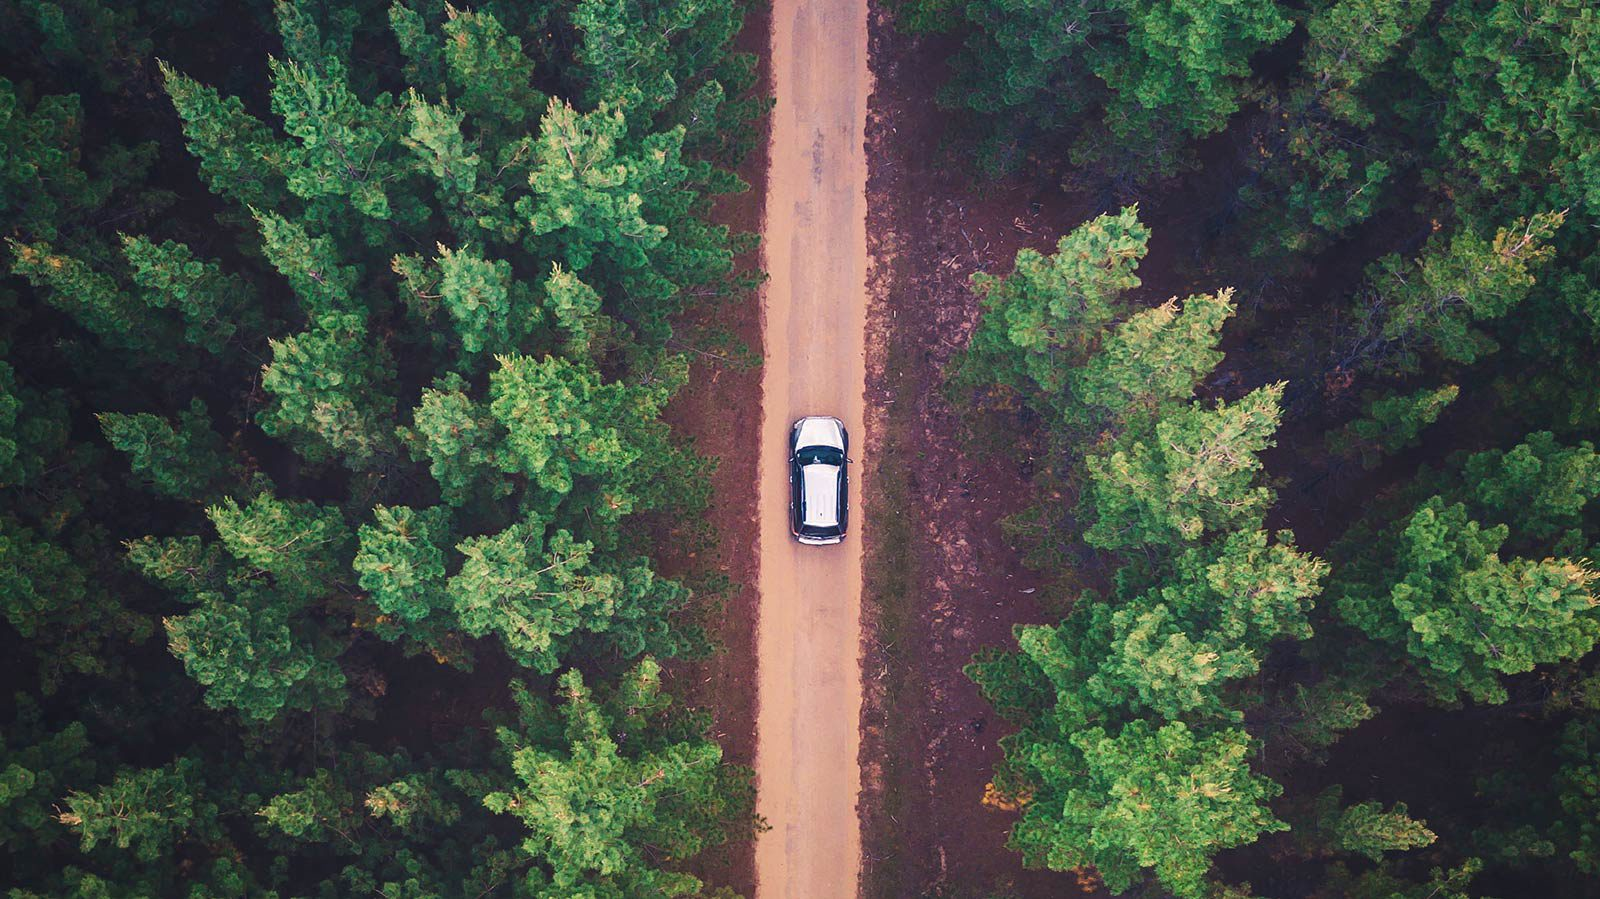 Birds-eye view of car driving down forest road.